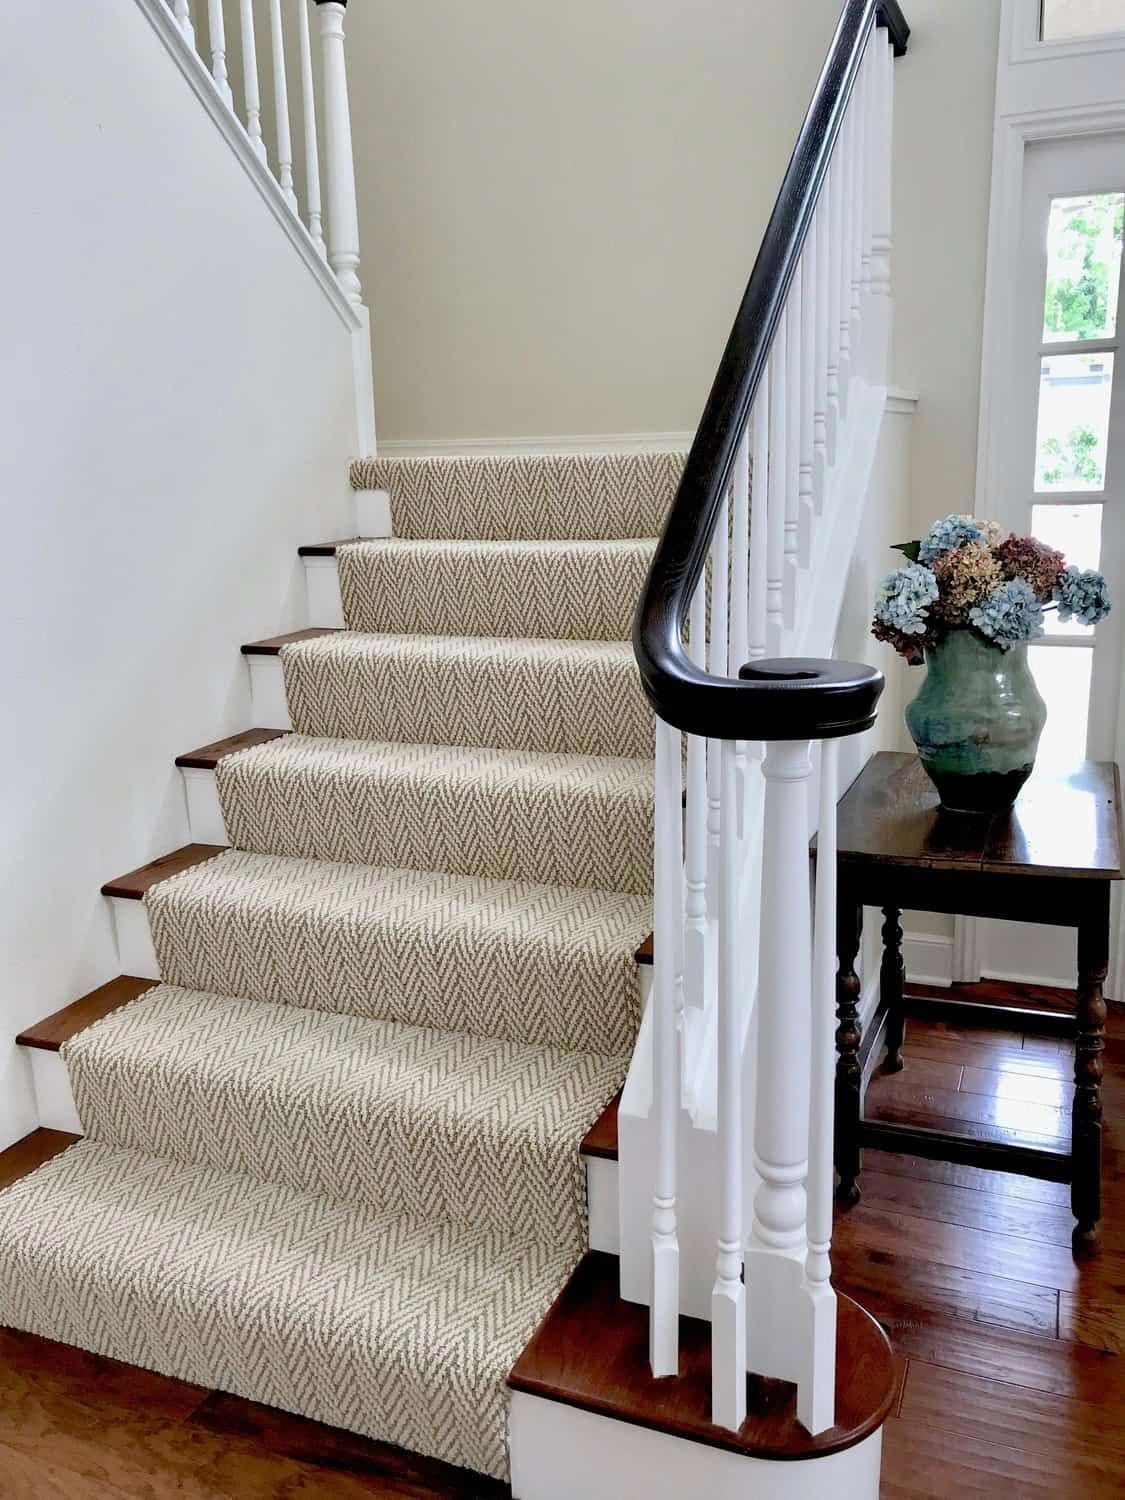 Best Tuftex Carpet Runner On Stairs Previously The Wall To 400 x 300